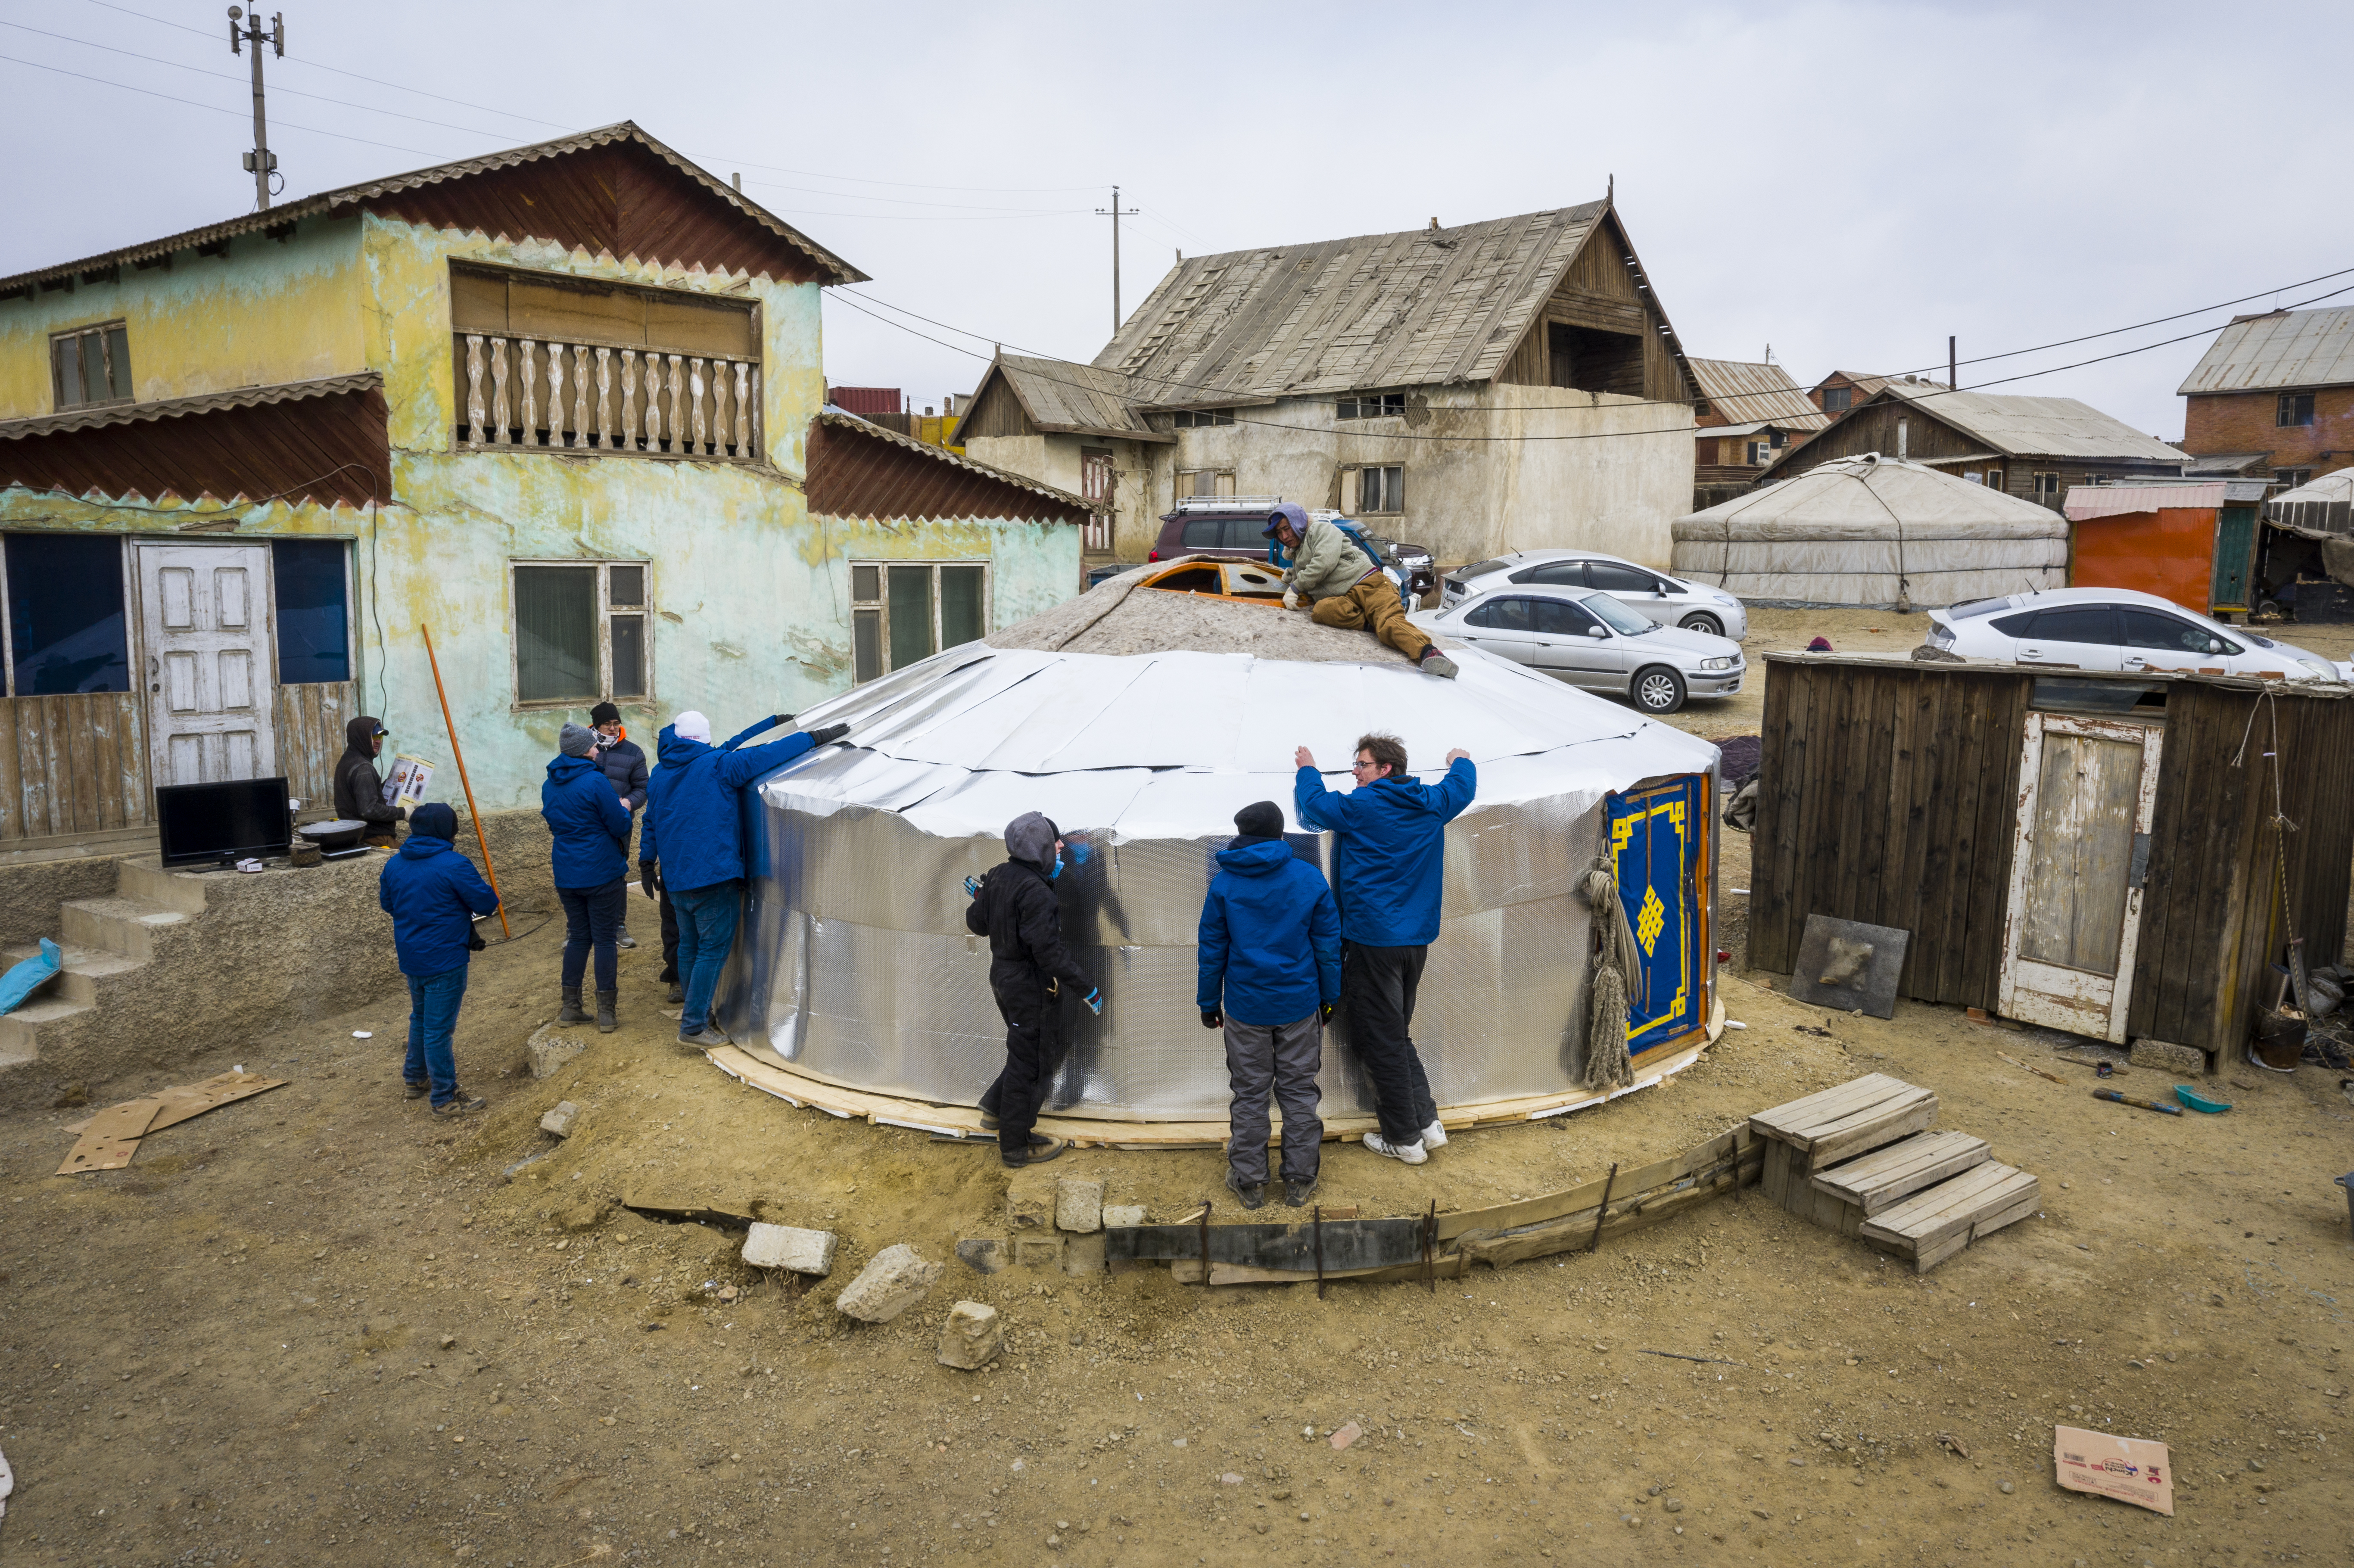 BYU Engineering Capstone teams travel to Ulaanbaatar, Mongolia, to implement project of retrofitting existing gers with insulation and building a new structure to help with heat efficiency to help with pollution problem due to burning coal. Project was in conjunction with The Church of Jesus Christ of Latter-day Saints and Deseret International Charities.